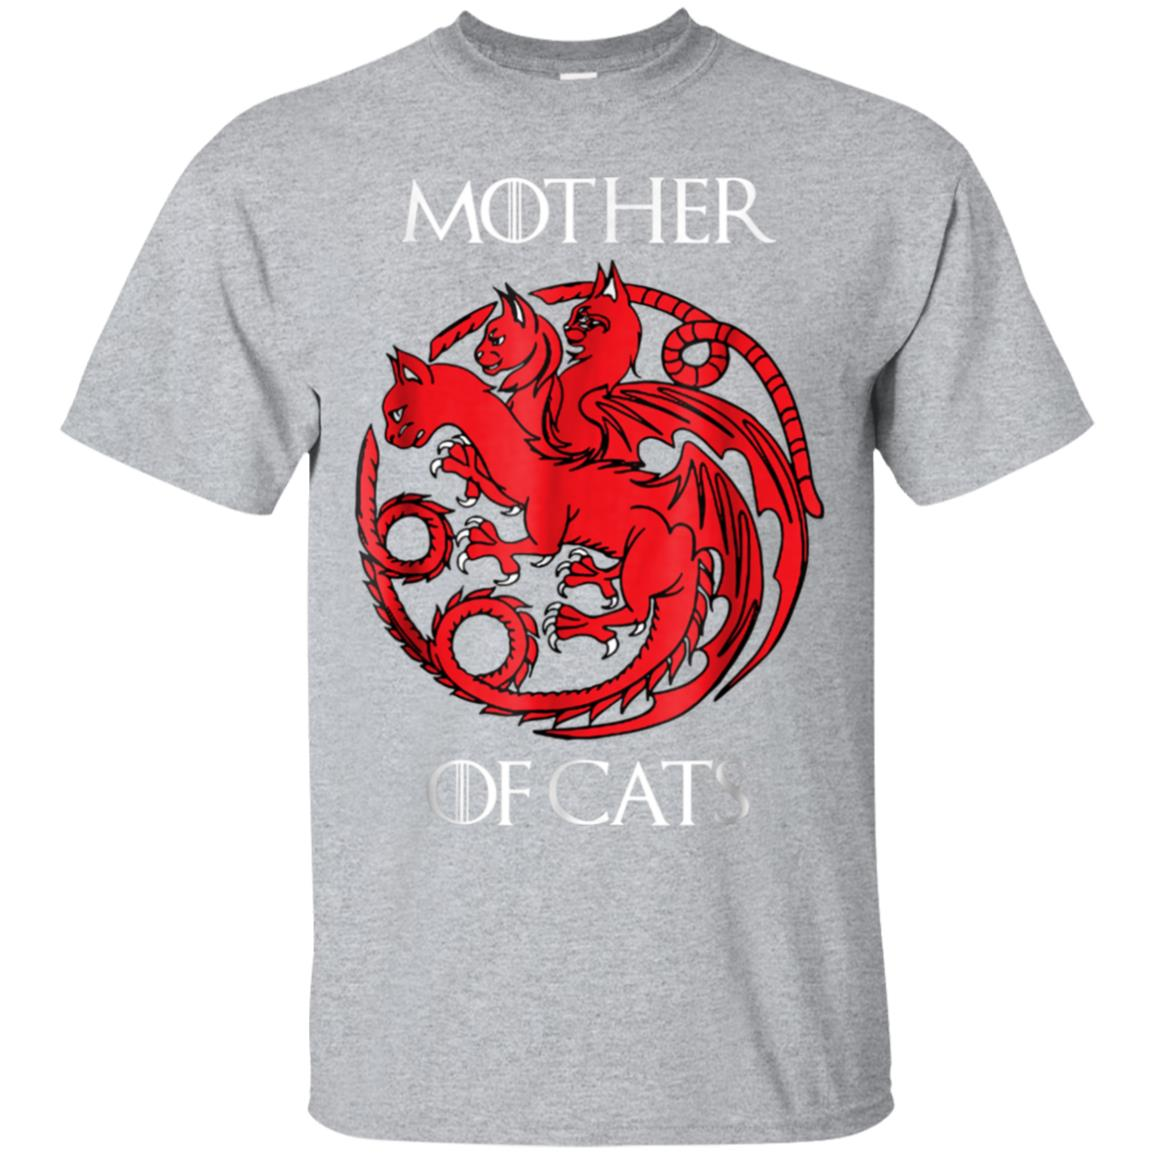 Cat Lovers Shirt - Mother of Cats Hot 2018 T-Shirt 99promocode